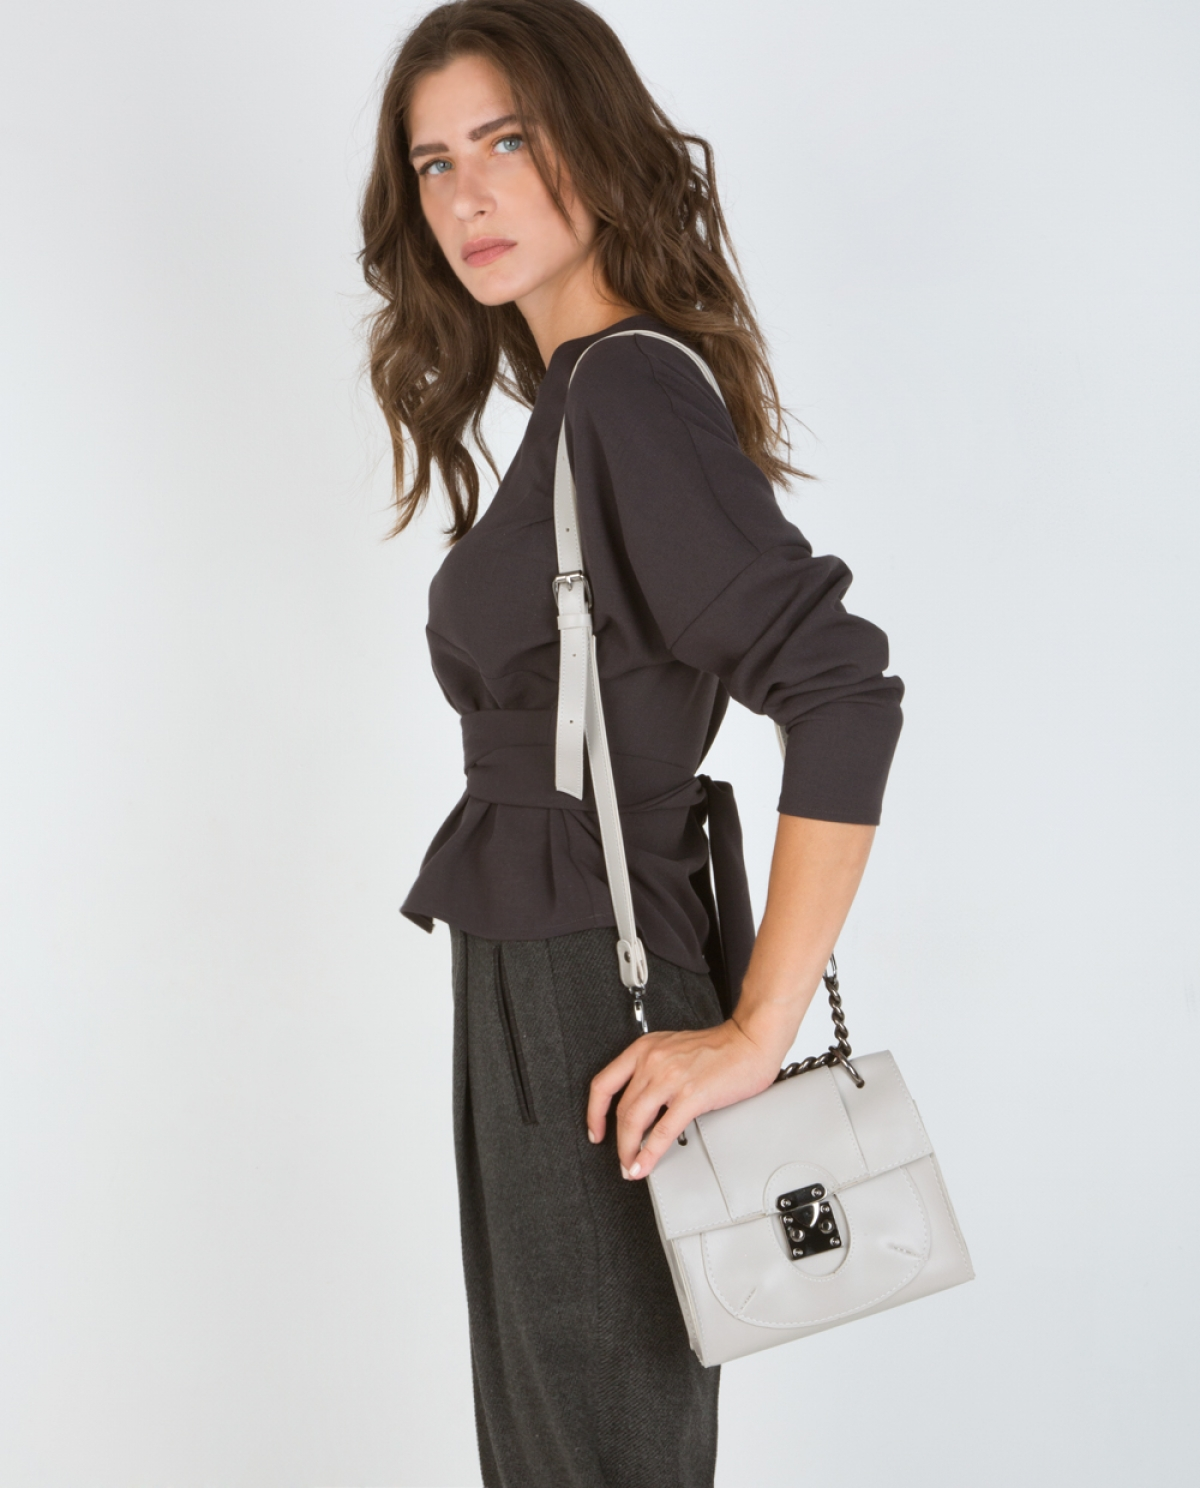 'Lady' Grey Leather Shoulder Bag